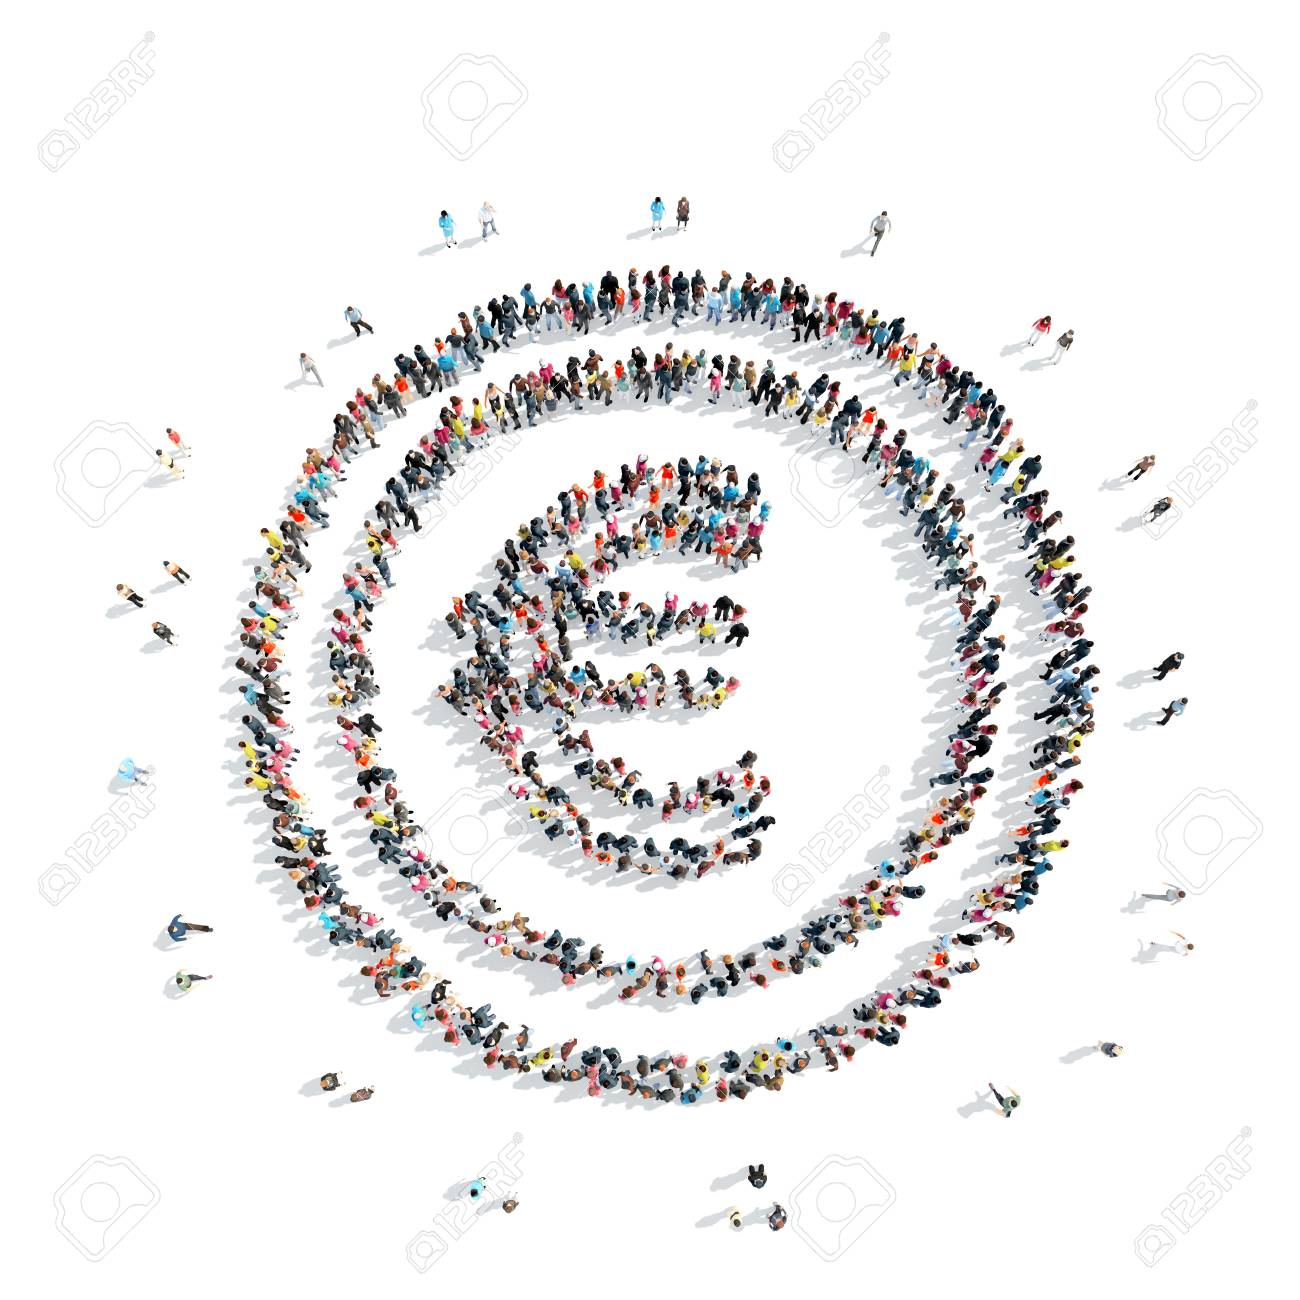 A Group Of People In The Shape Of Euro Sign Money Cartoon Stock